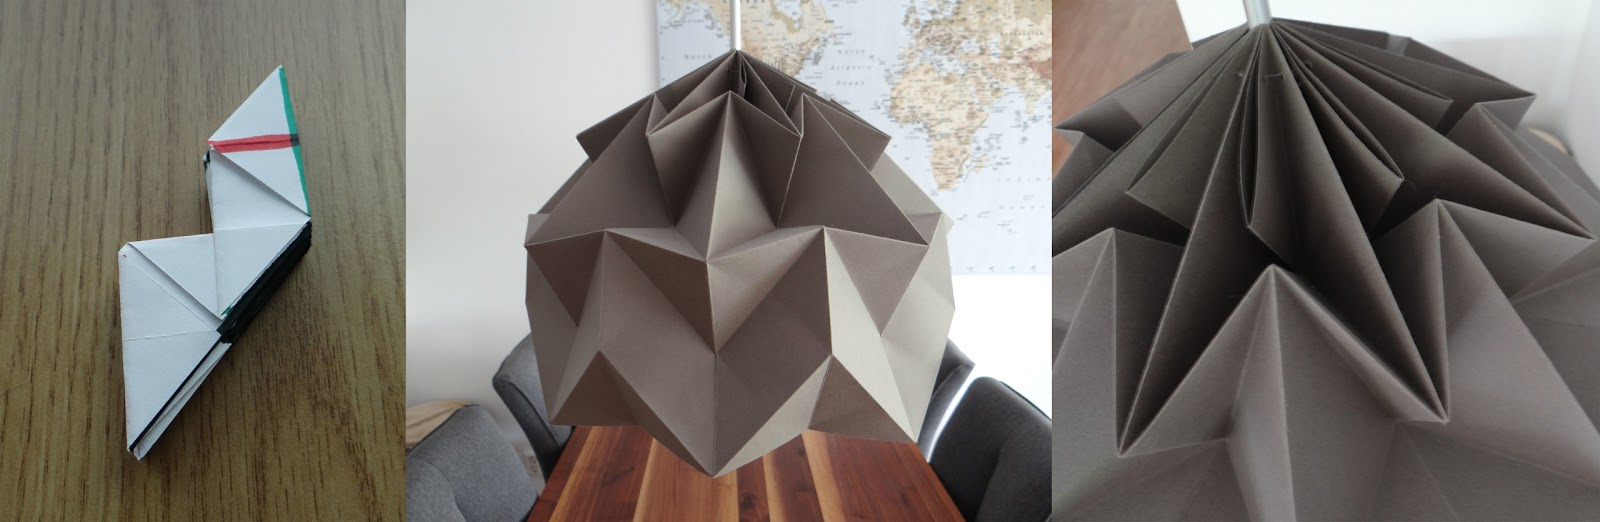 Creating my own lampshades based on the origami magic ball mostly creating my own lampshades based on the origami magic ball aloadofball Image collections